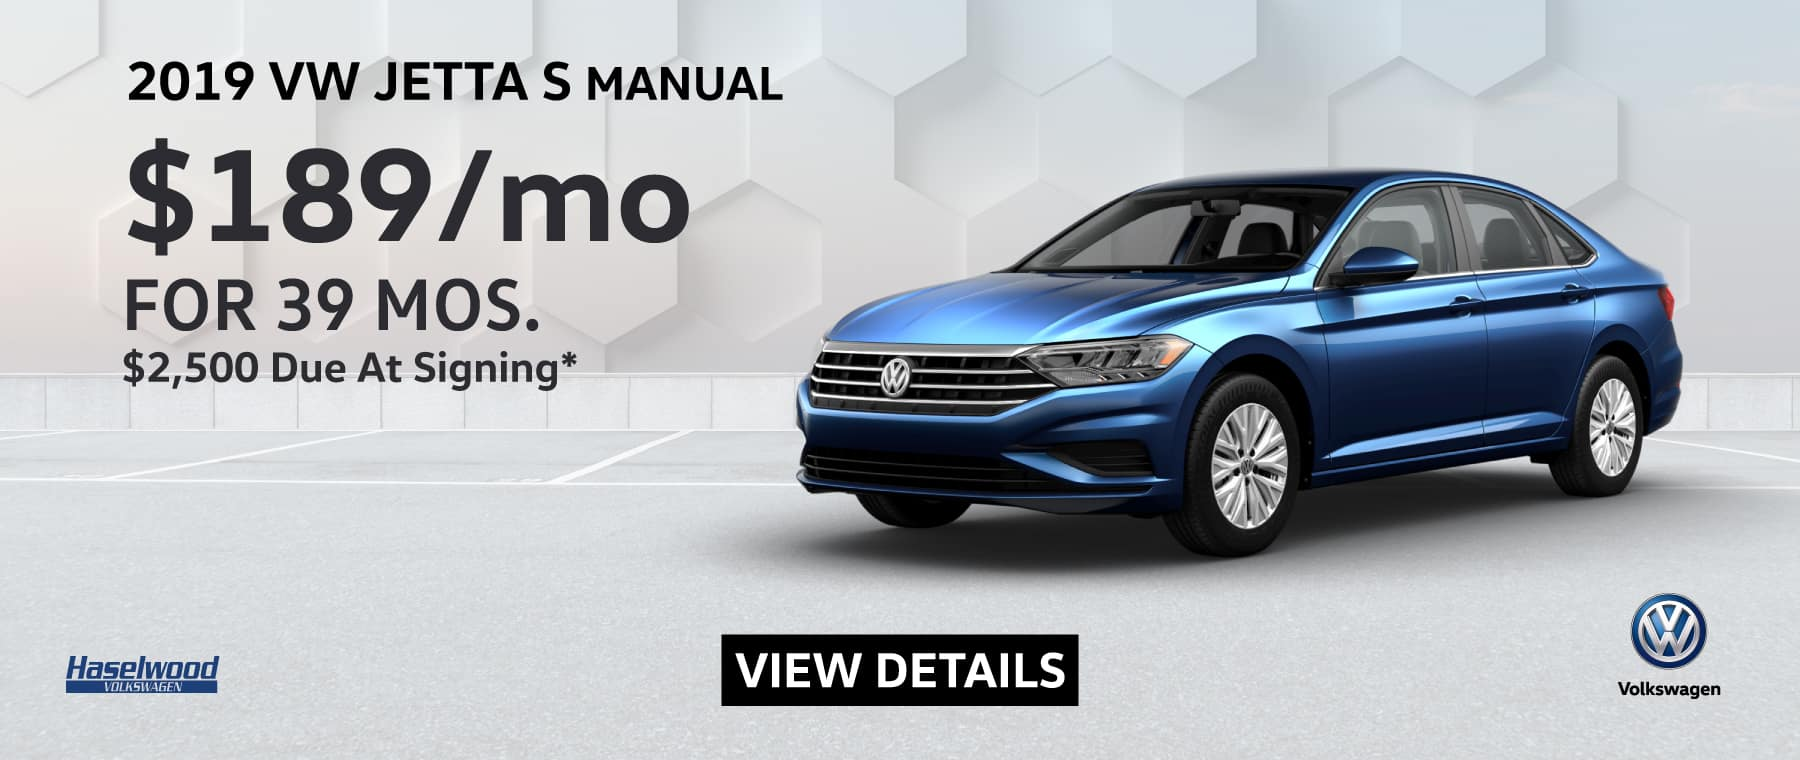 2019 Volkswagen Jetta S Manual  $189/mo. for 39 months $2,500 Due at Signing    * Offer valid on 2019 Volkswagen Jetta S Manual. $189 per mo. for 39 months. Lease with $2,500 down; includes a $595 acquisition fee, lease through Volkswagen Credit. No security deposit required. Valid on VIN: 3VWN57BU5KM099492, 3VWN57BU4KM119022, 3VWN57BUXKM115492. For highly qualified customers on approved top tier credit through Volkswagen Credit. Lessee responsible for maintenance, excessive wear/tear and 20¢/mi over 10K mi/yr. Excludes state and local taxes, tags, registration and title, insurance and dealer charges. Subject to credit approval. 39 monthly payments required. Monthly lease payment based on MSRP of $20,160 and destination charges less a suggested dealer contribution resulting in a Gross capitalized cost of $18,920. Cap cost reduction: $1,240. A negotiable dealer documentary service fee of up to $150 may be added to the sale price or capitalized cost. See dealer for complete details and restrictions. 6 years/72,000 miles (whichever occurs first). New Vehicle Limited Warranty on MY2018 and newer VW vehicles, excluding e-Golf. See owner's literature or dealer for warranty exclusions and limitations. Exp. 6/30/2019.